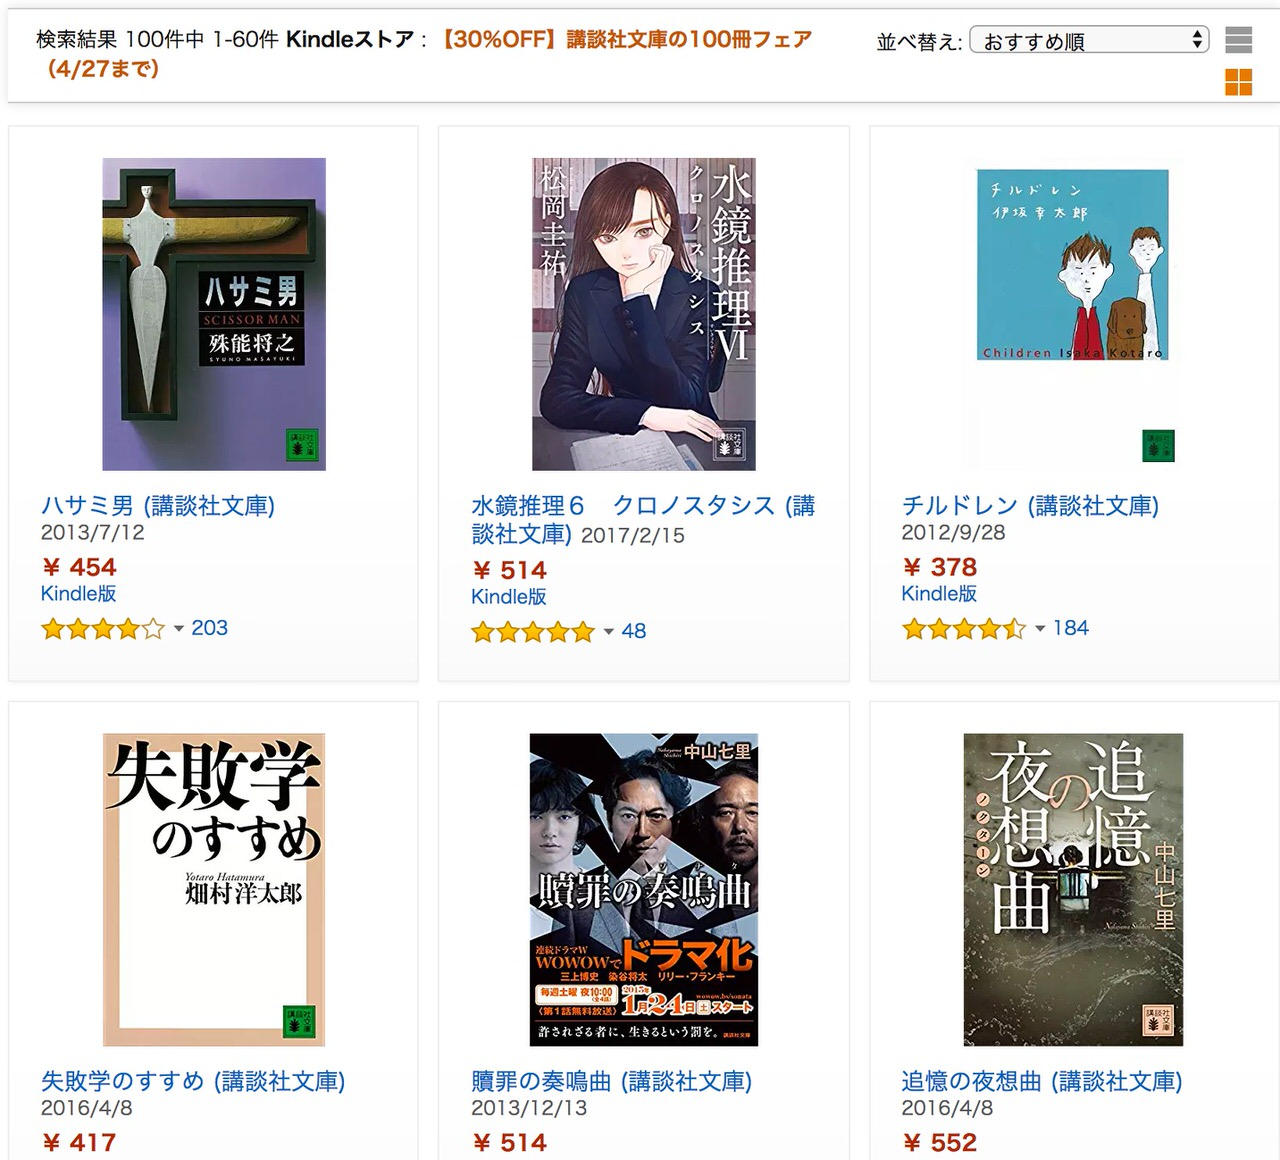 Amazon Kindle【30%OFF】「講談社文庫の100冊フェア」開催中(4月27日まで)